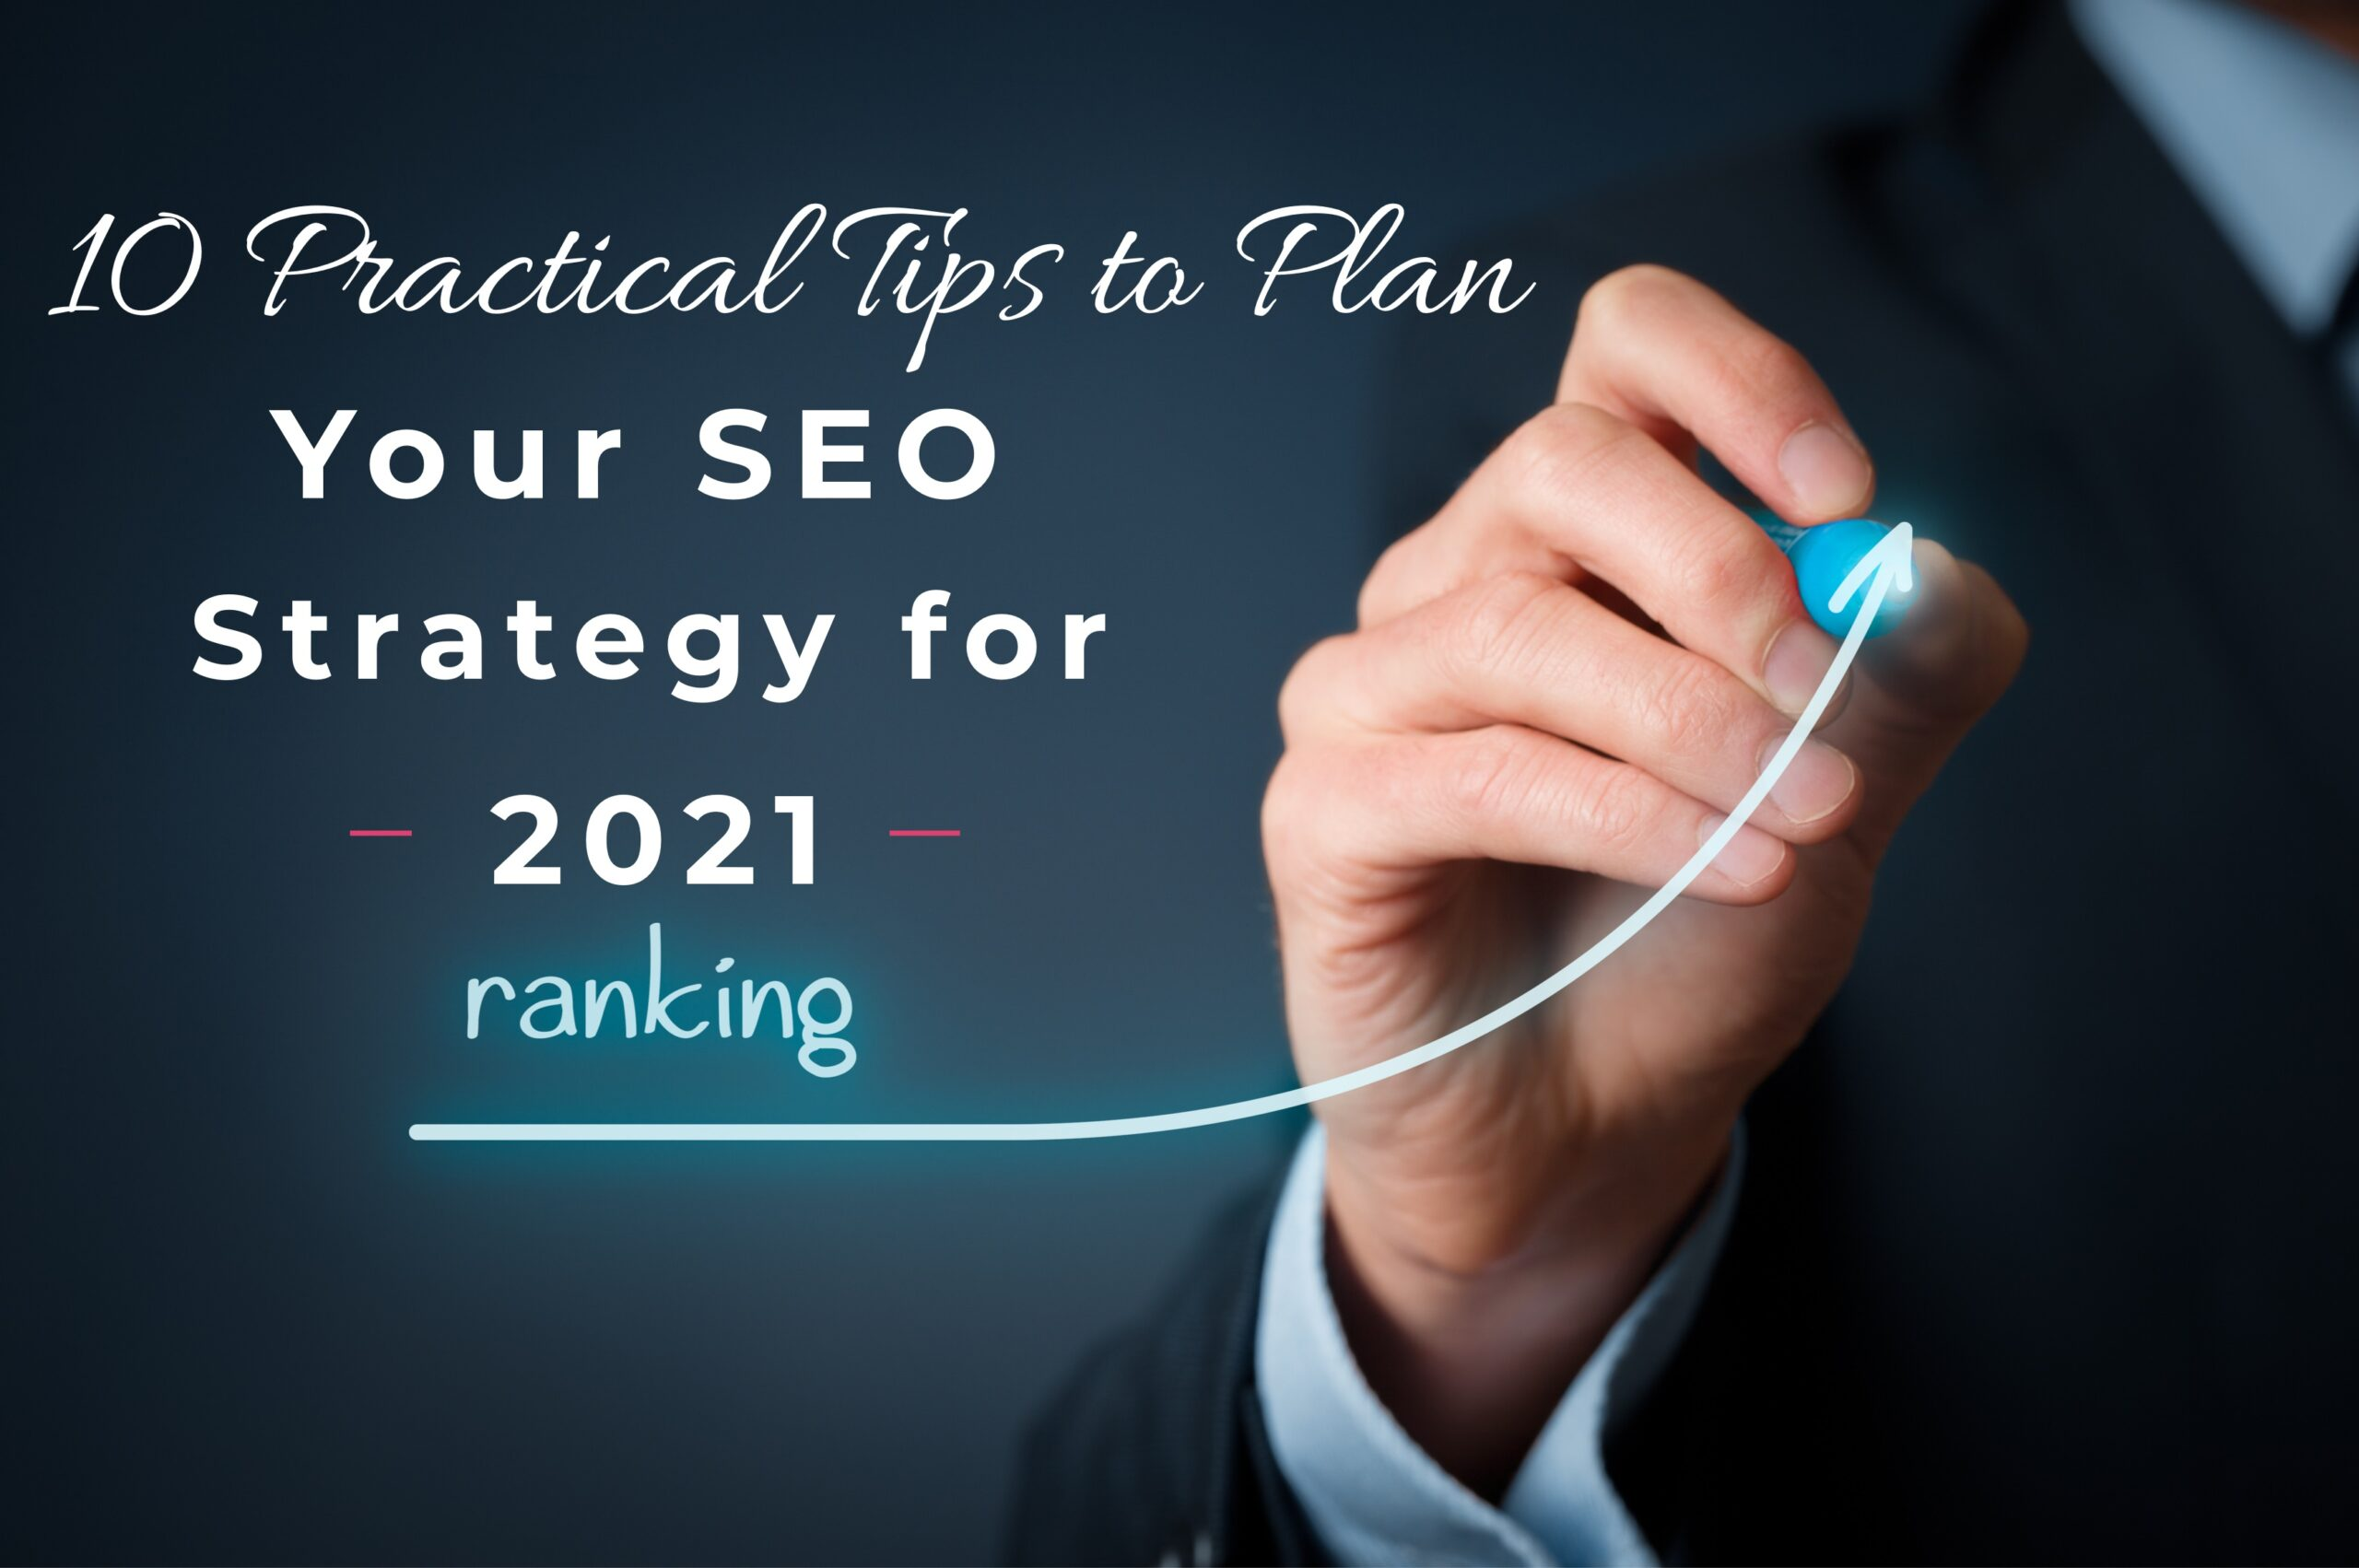 10 Practical Tips to Plan Your SEO Strategy for 2021